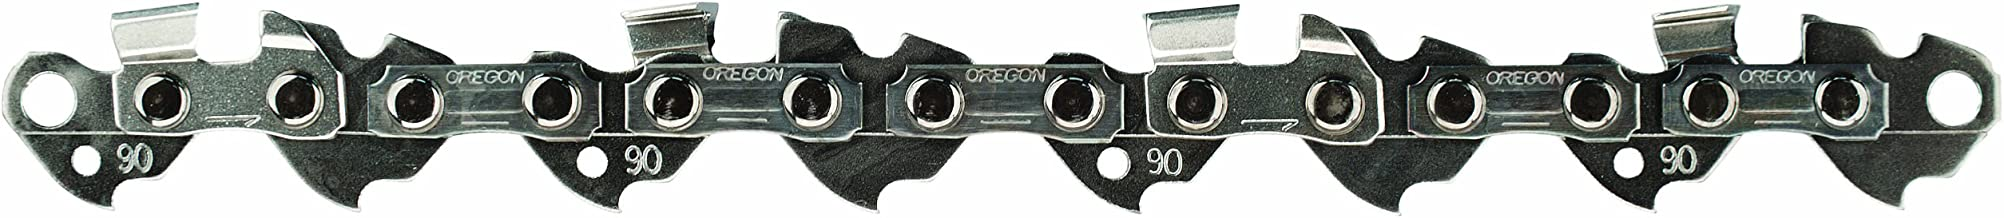 Oregon 90PX055G Low Profile 3/8-Inch Pitch 0.043-Inch Gauge 55-Drive Link Saw Chain